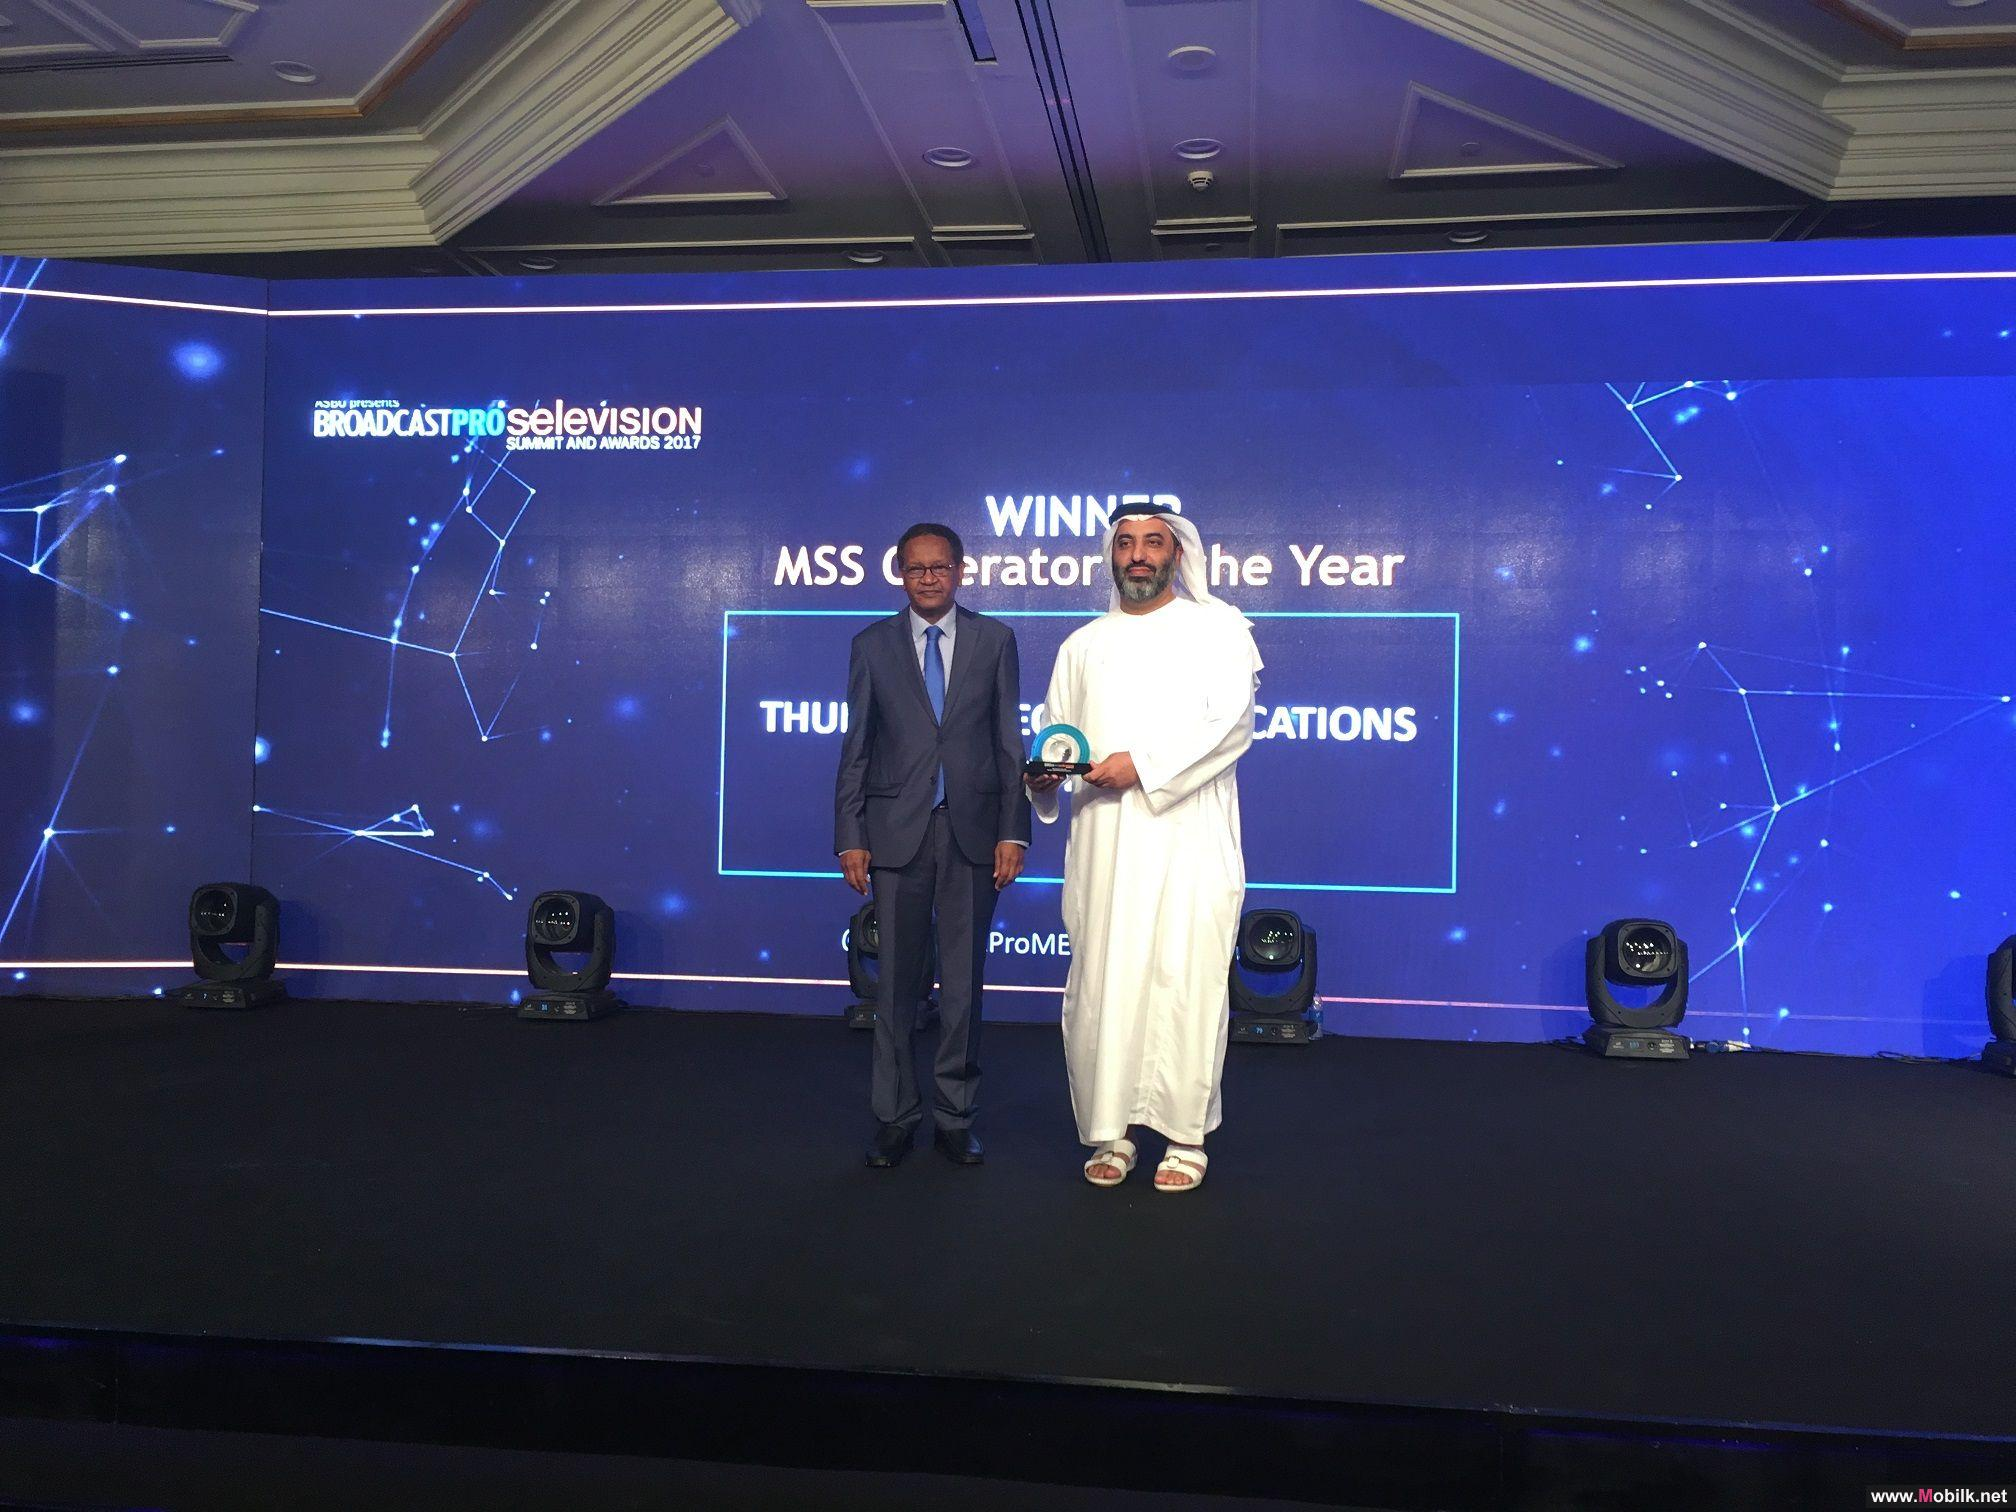 Thuraya named MSS Operator of the Year in  SatellitePro Selevision Awards